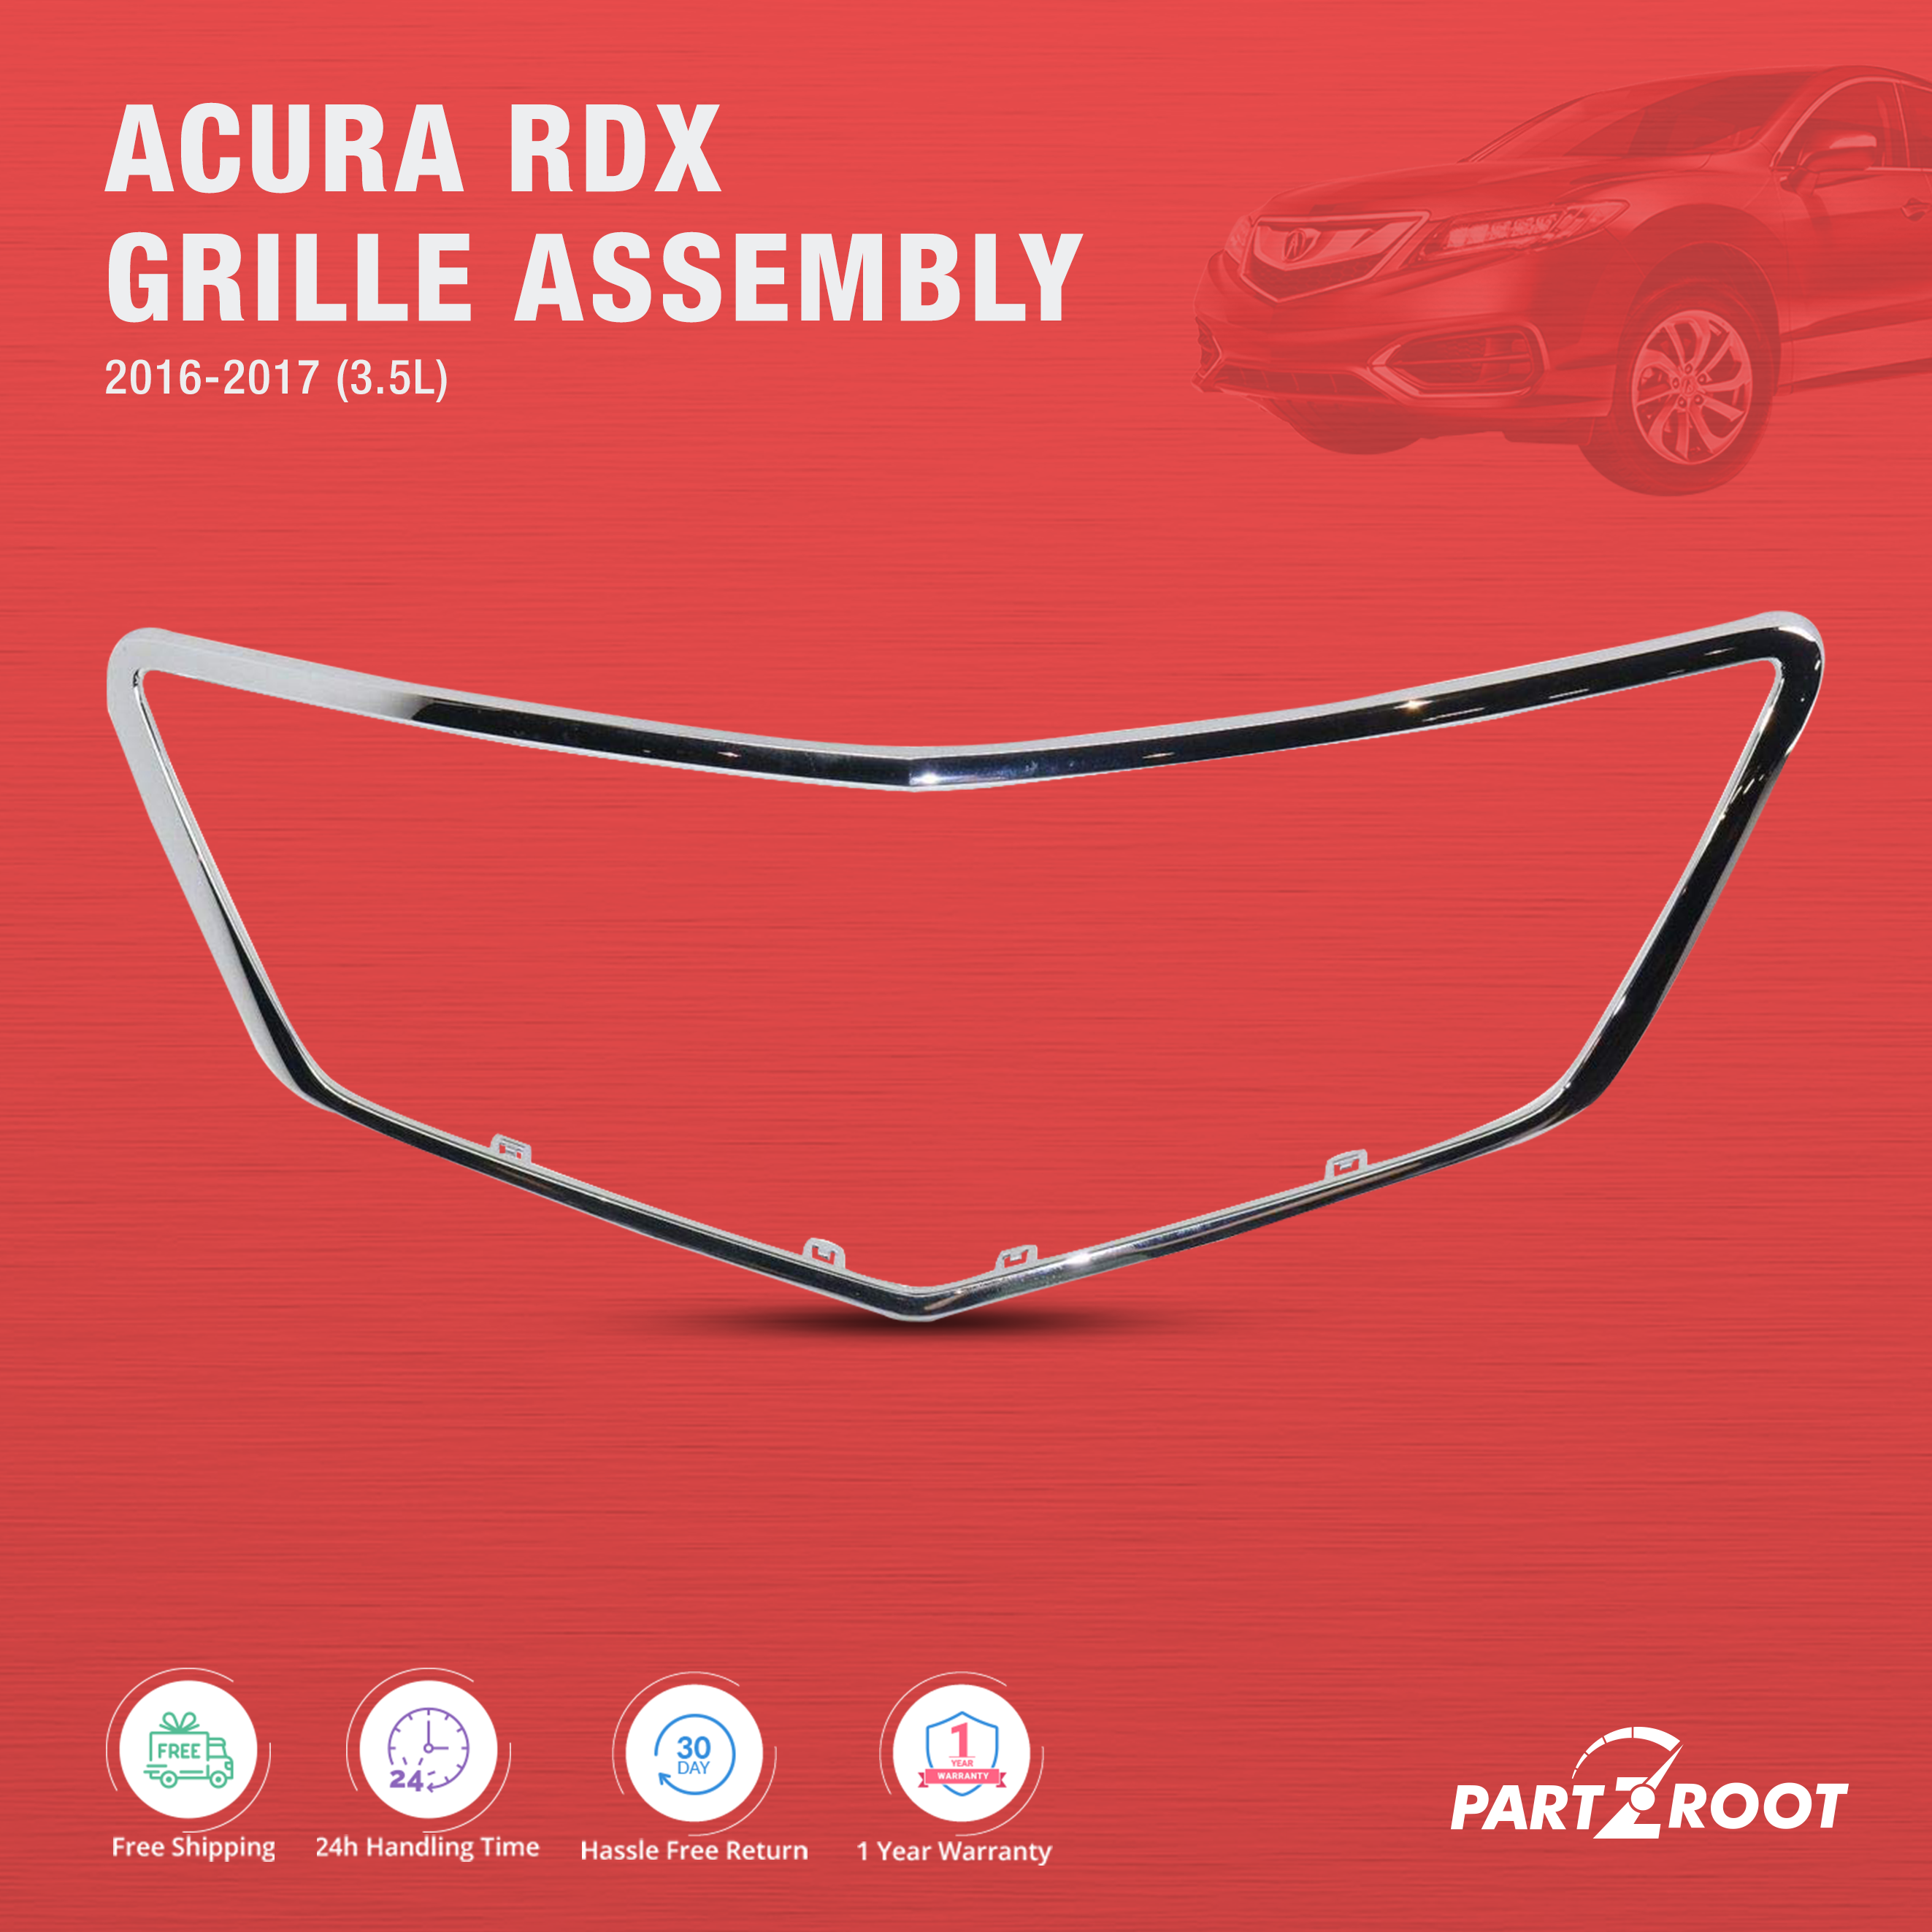 2016-2017 Acura Rdx 3.5L Grille Assembly